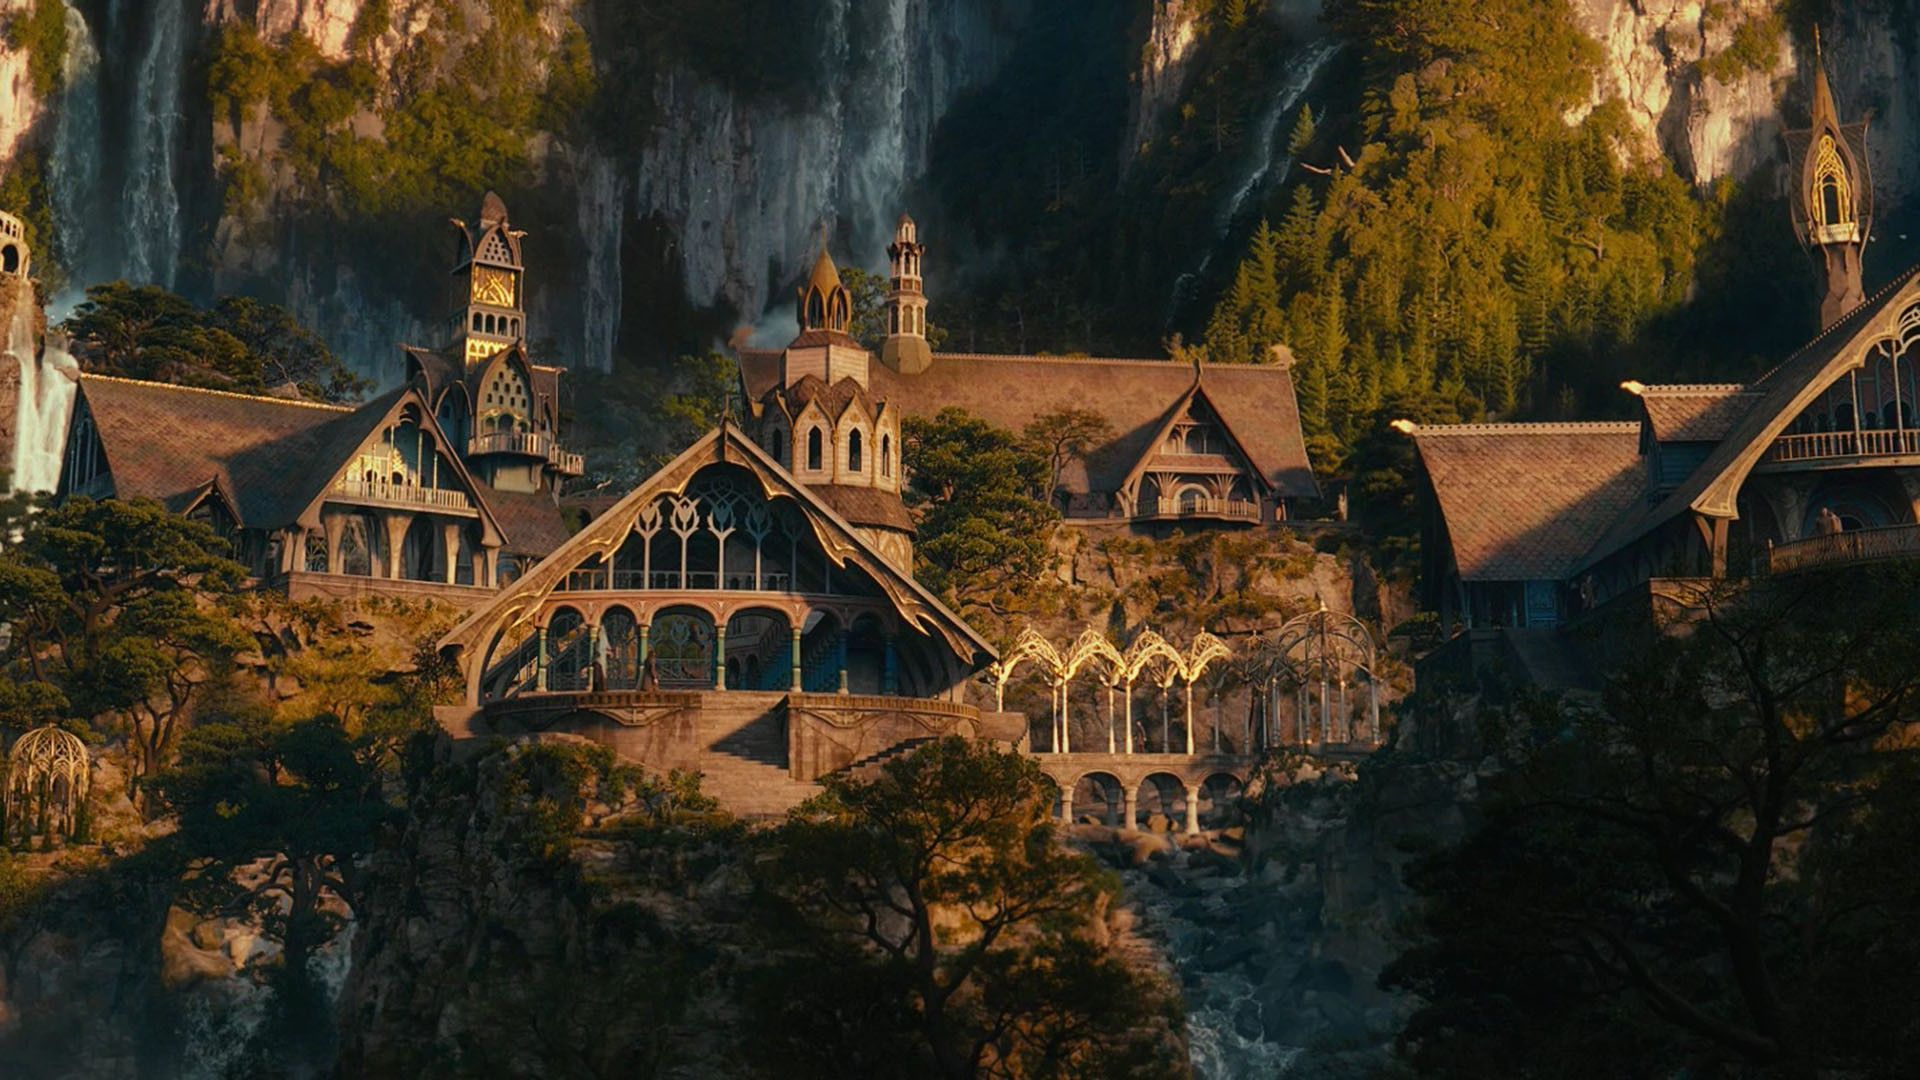 rivendell the lord of the rings movie hd wallpaper 1920x1080 7246jpg 1920x1080